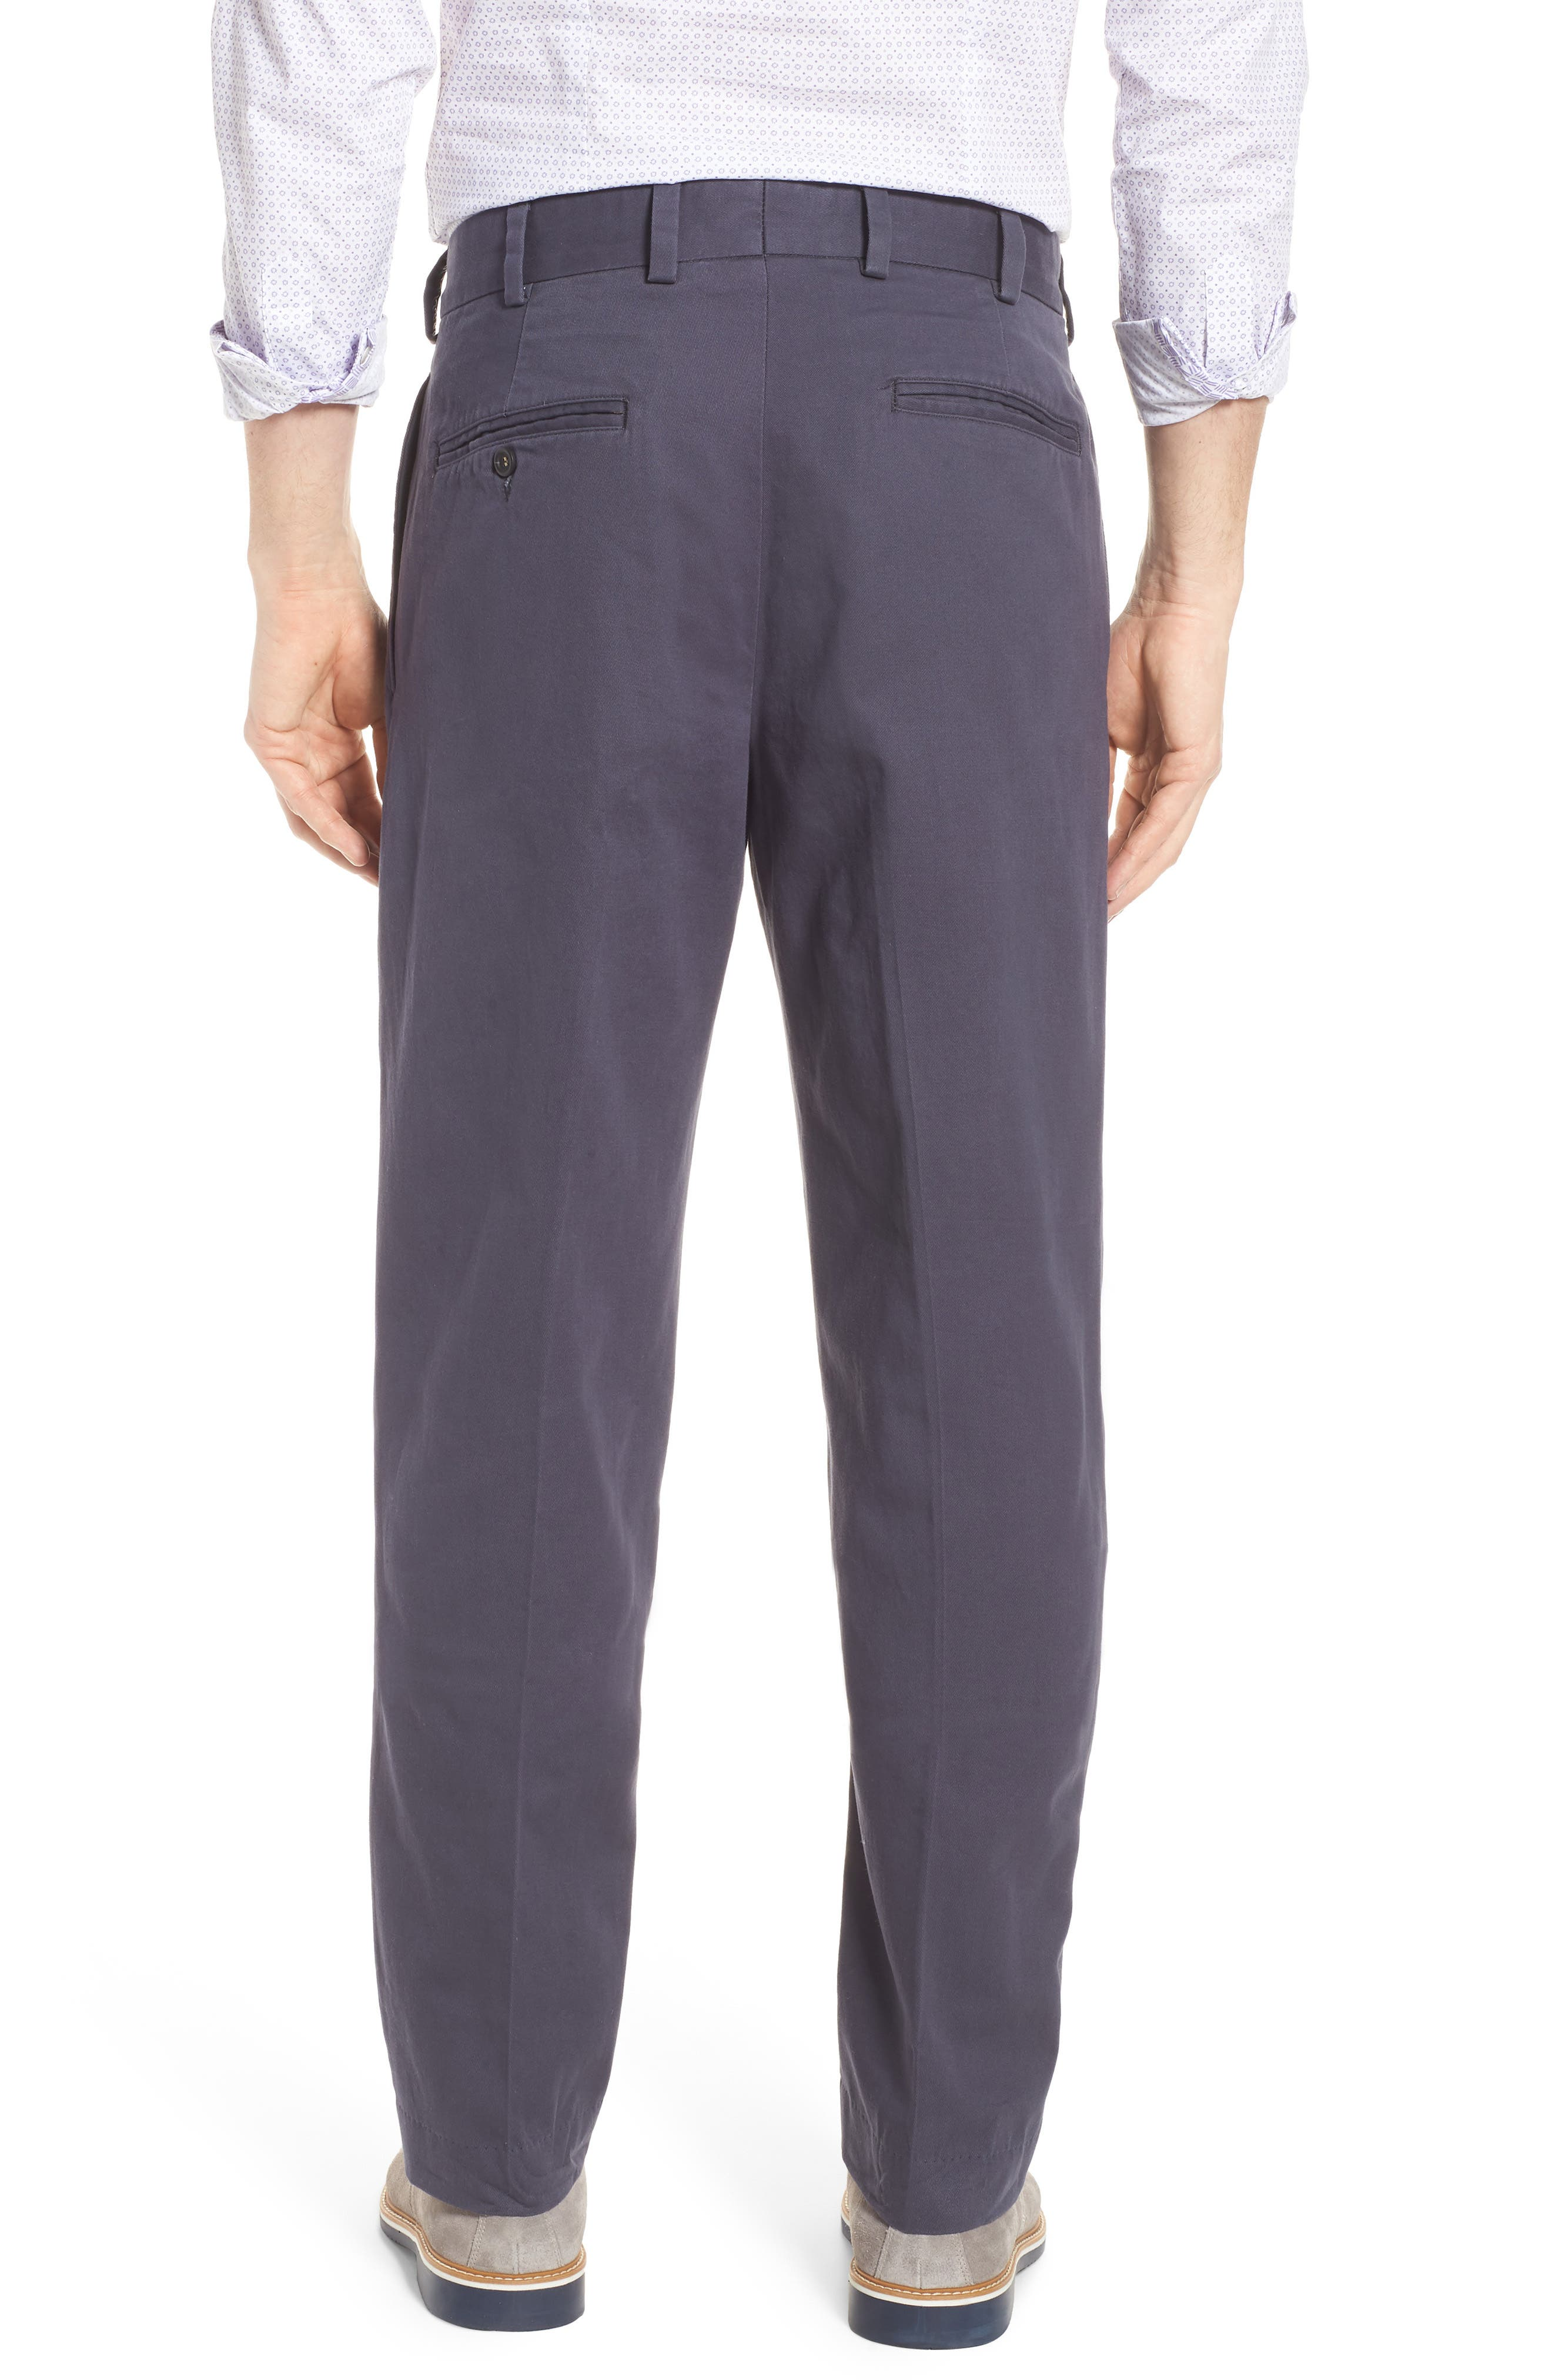 M2 Classic Fit Vintage Twill Pleated Pants,                             Alternate thumbnail 2, color,                             410